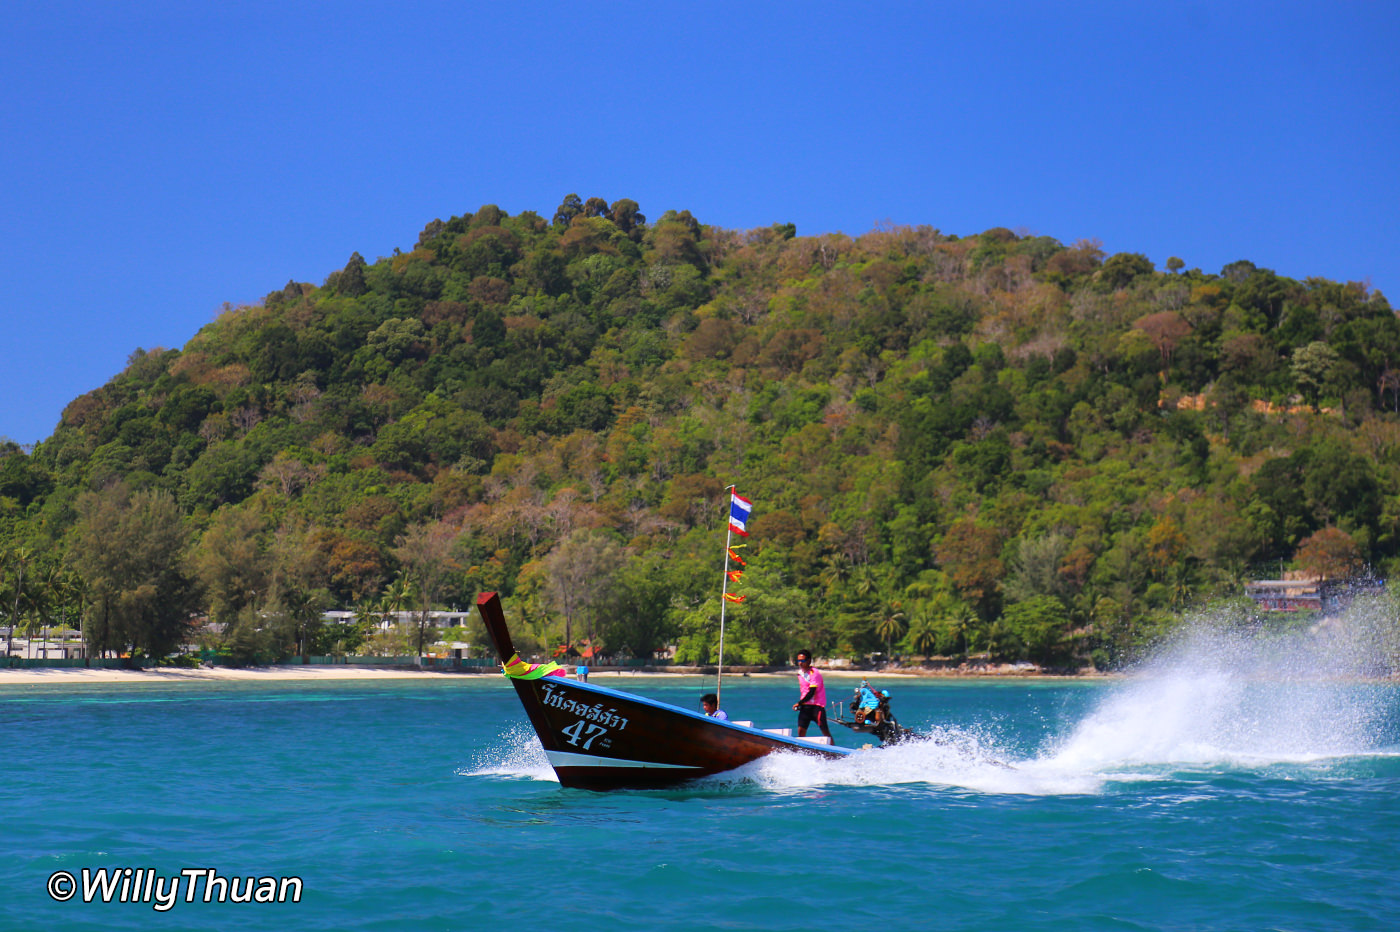 Lontail boat to Freedom Beach